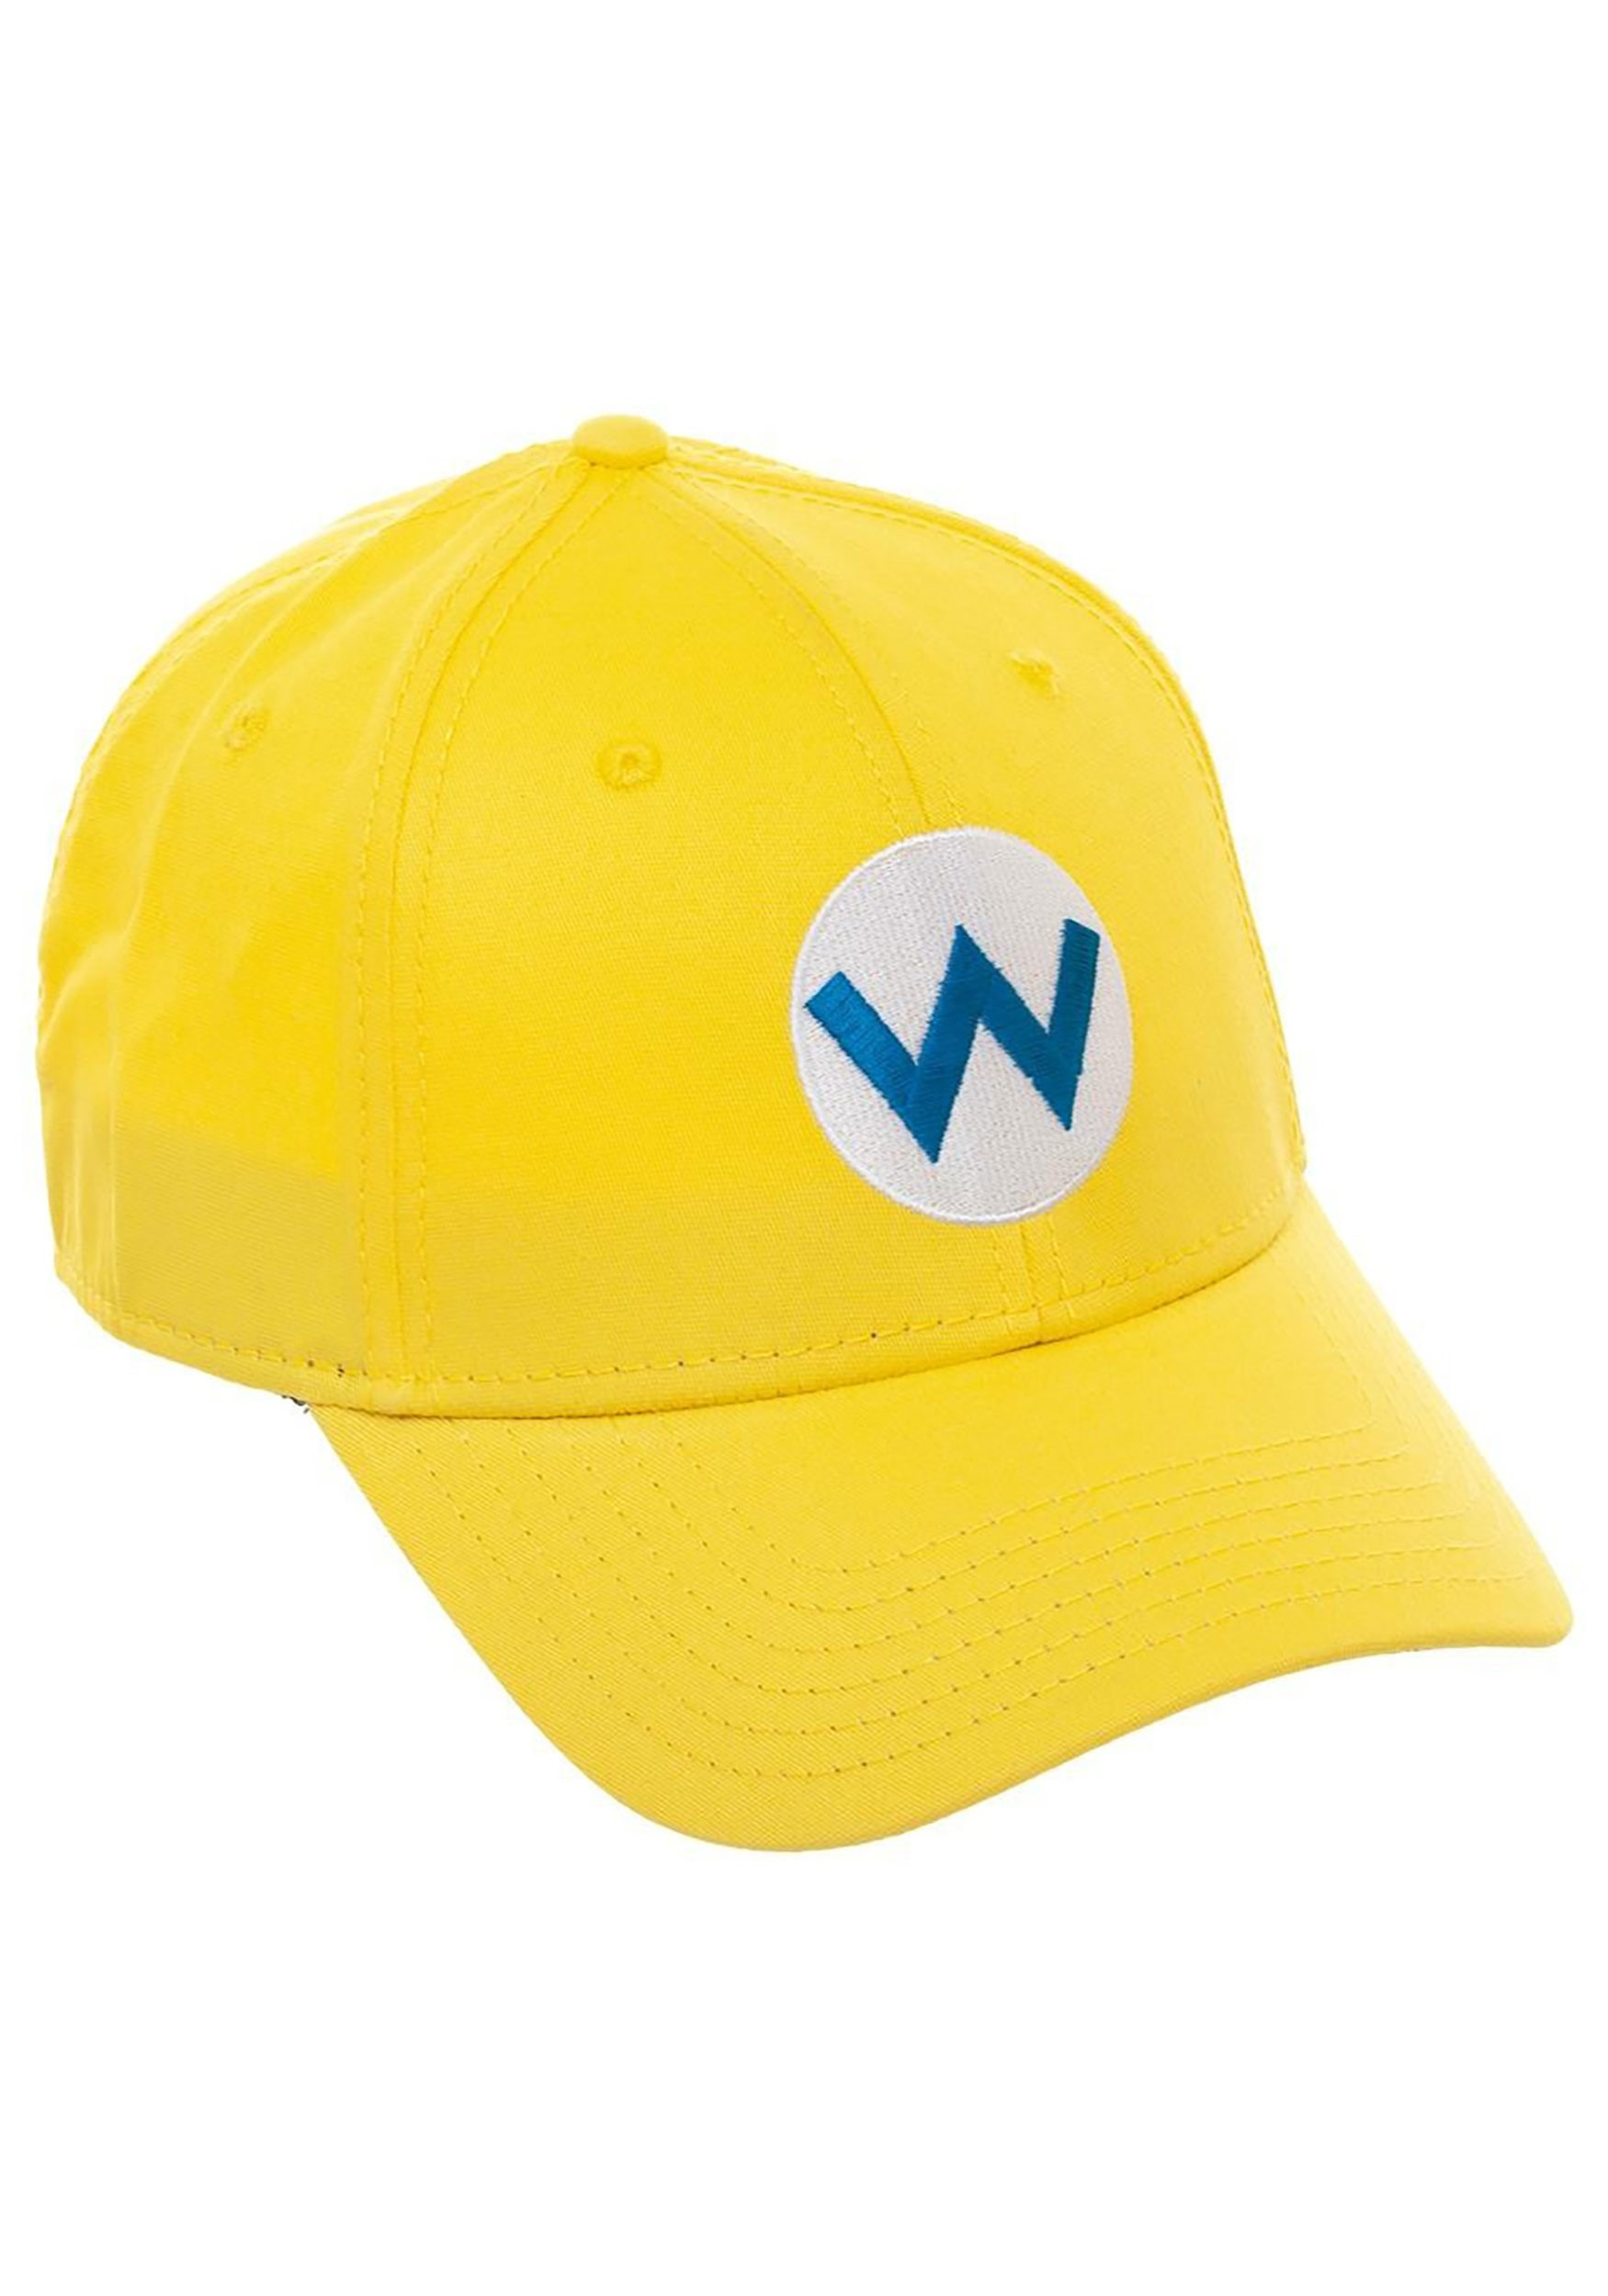 Wario_Flex_Fit_Hat